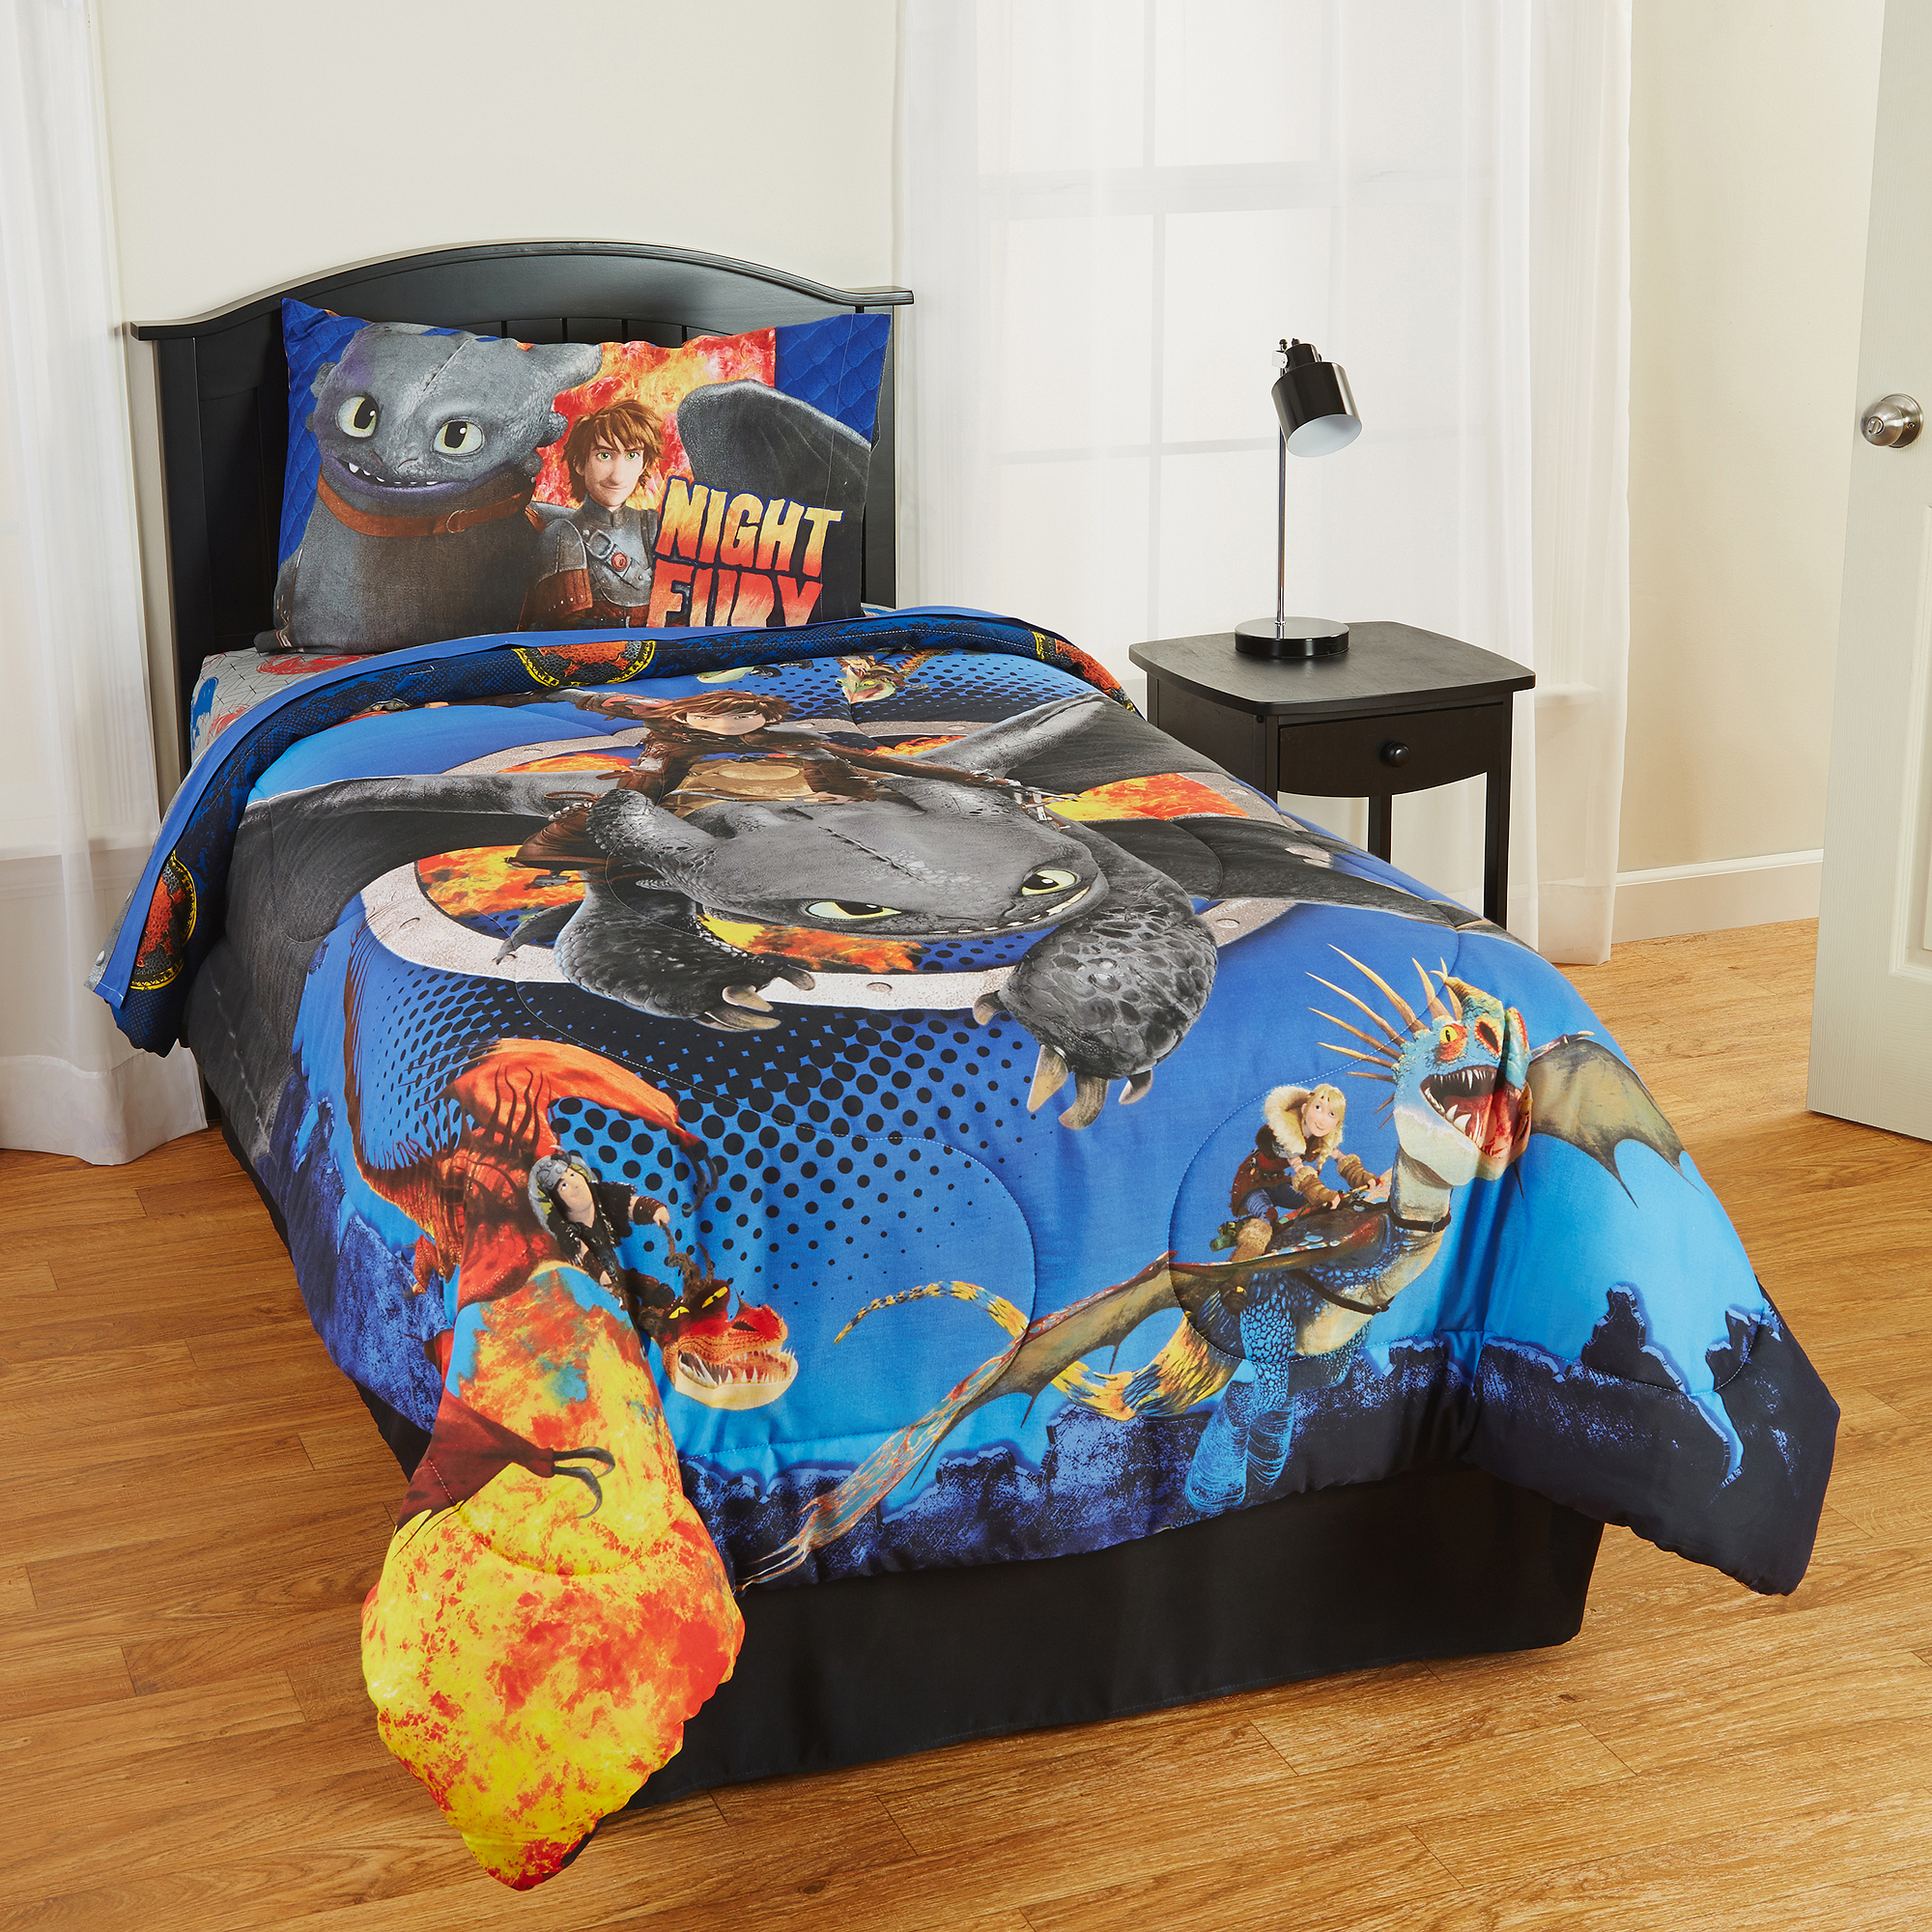 Franco How To Train Your Dragon 2 Bedding Comforter, Twin